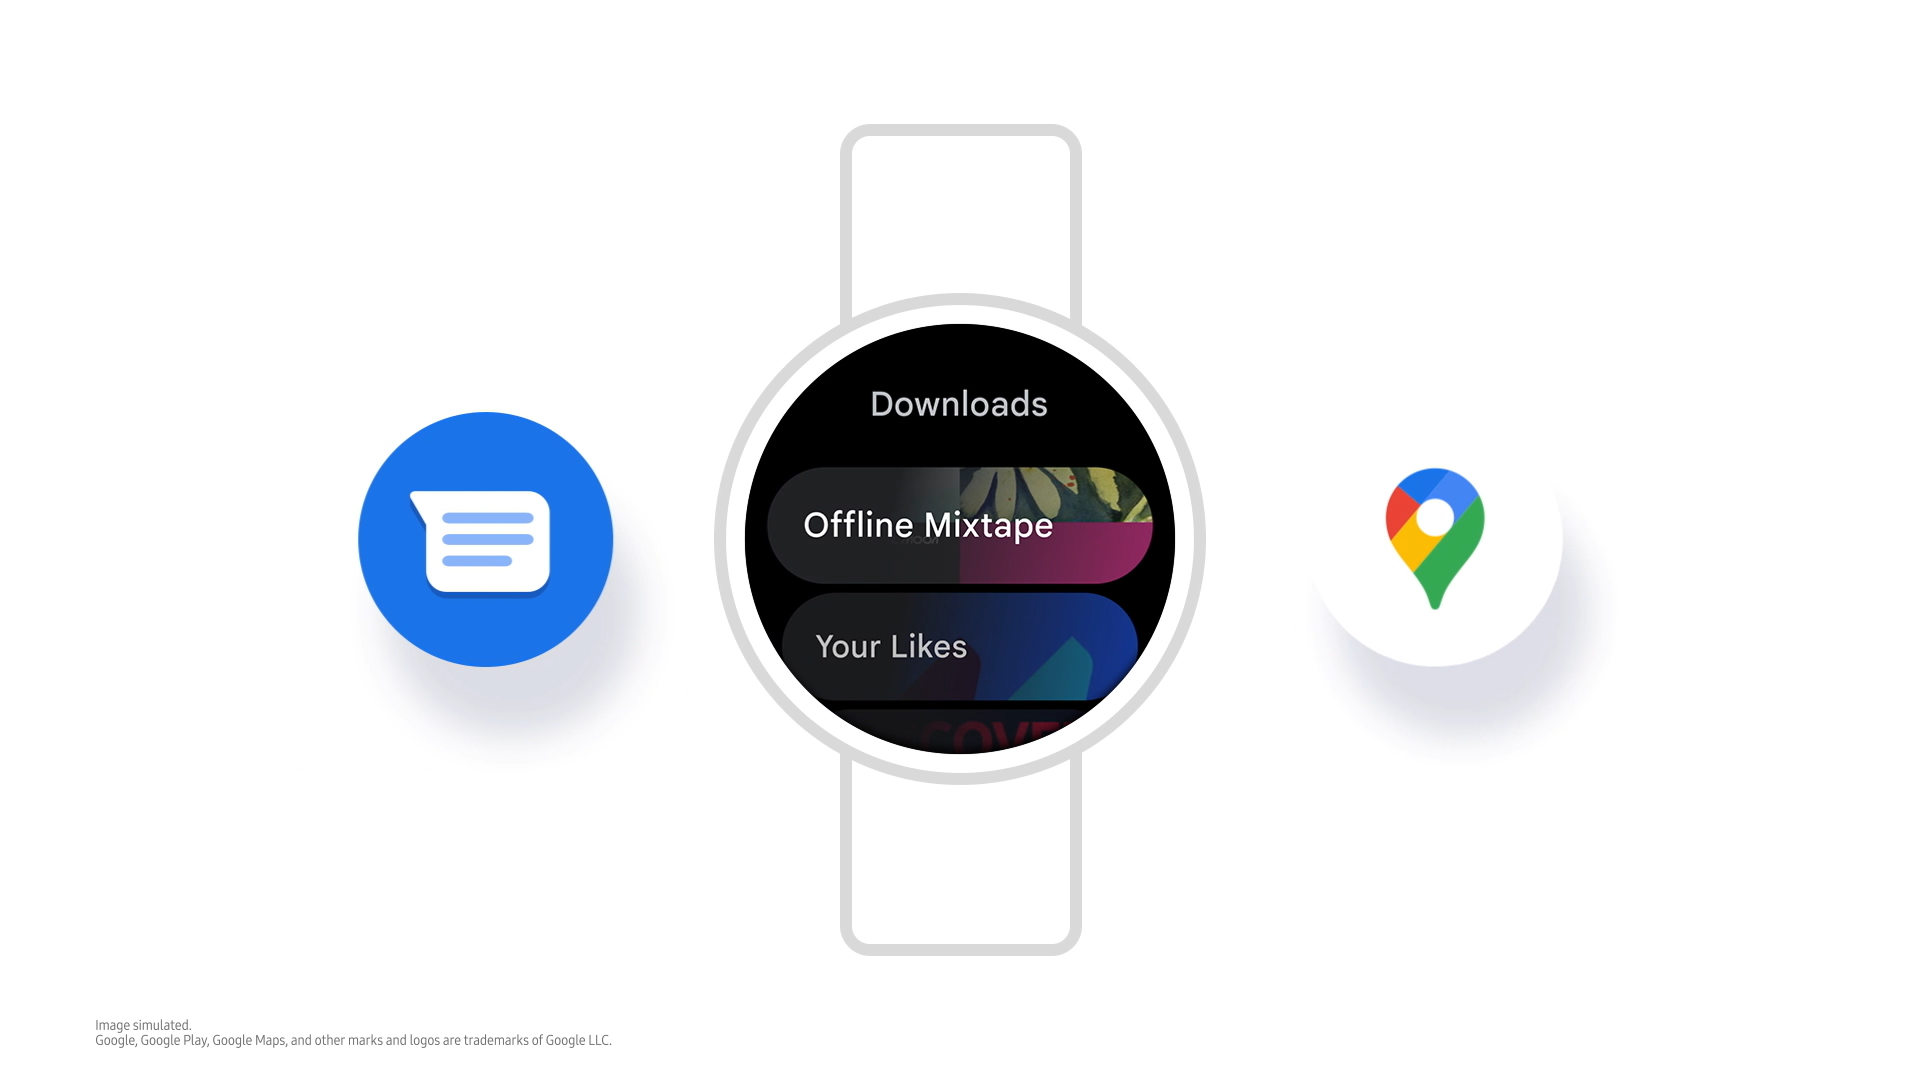 <p>A screenshot showing the new Samsung One UI Watch experience based on Wear OS.</p>